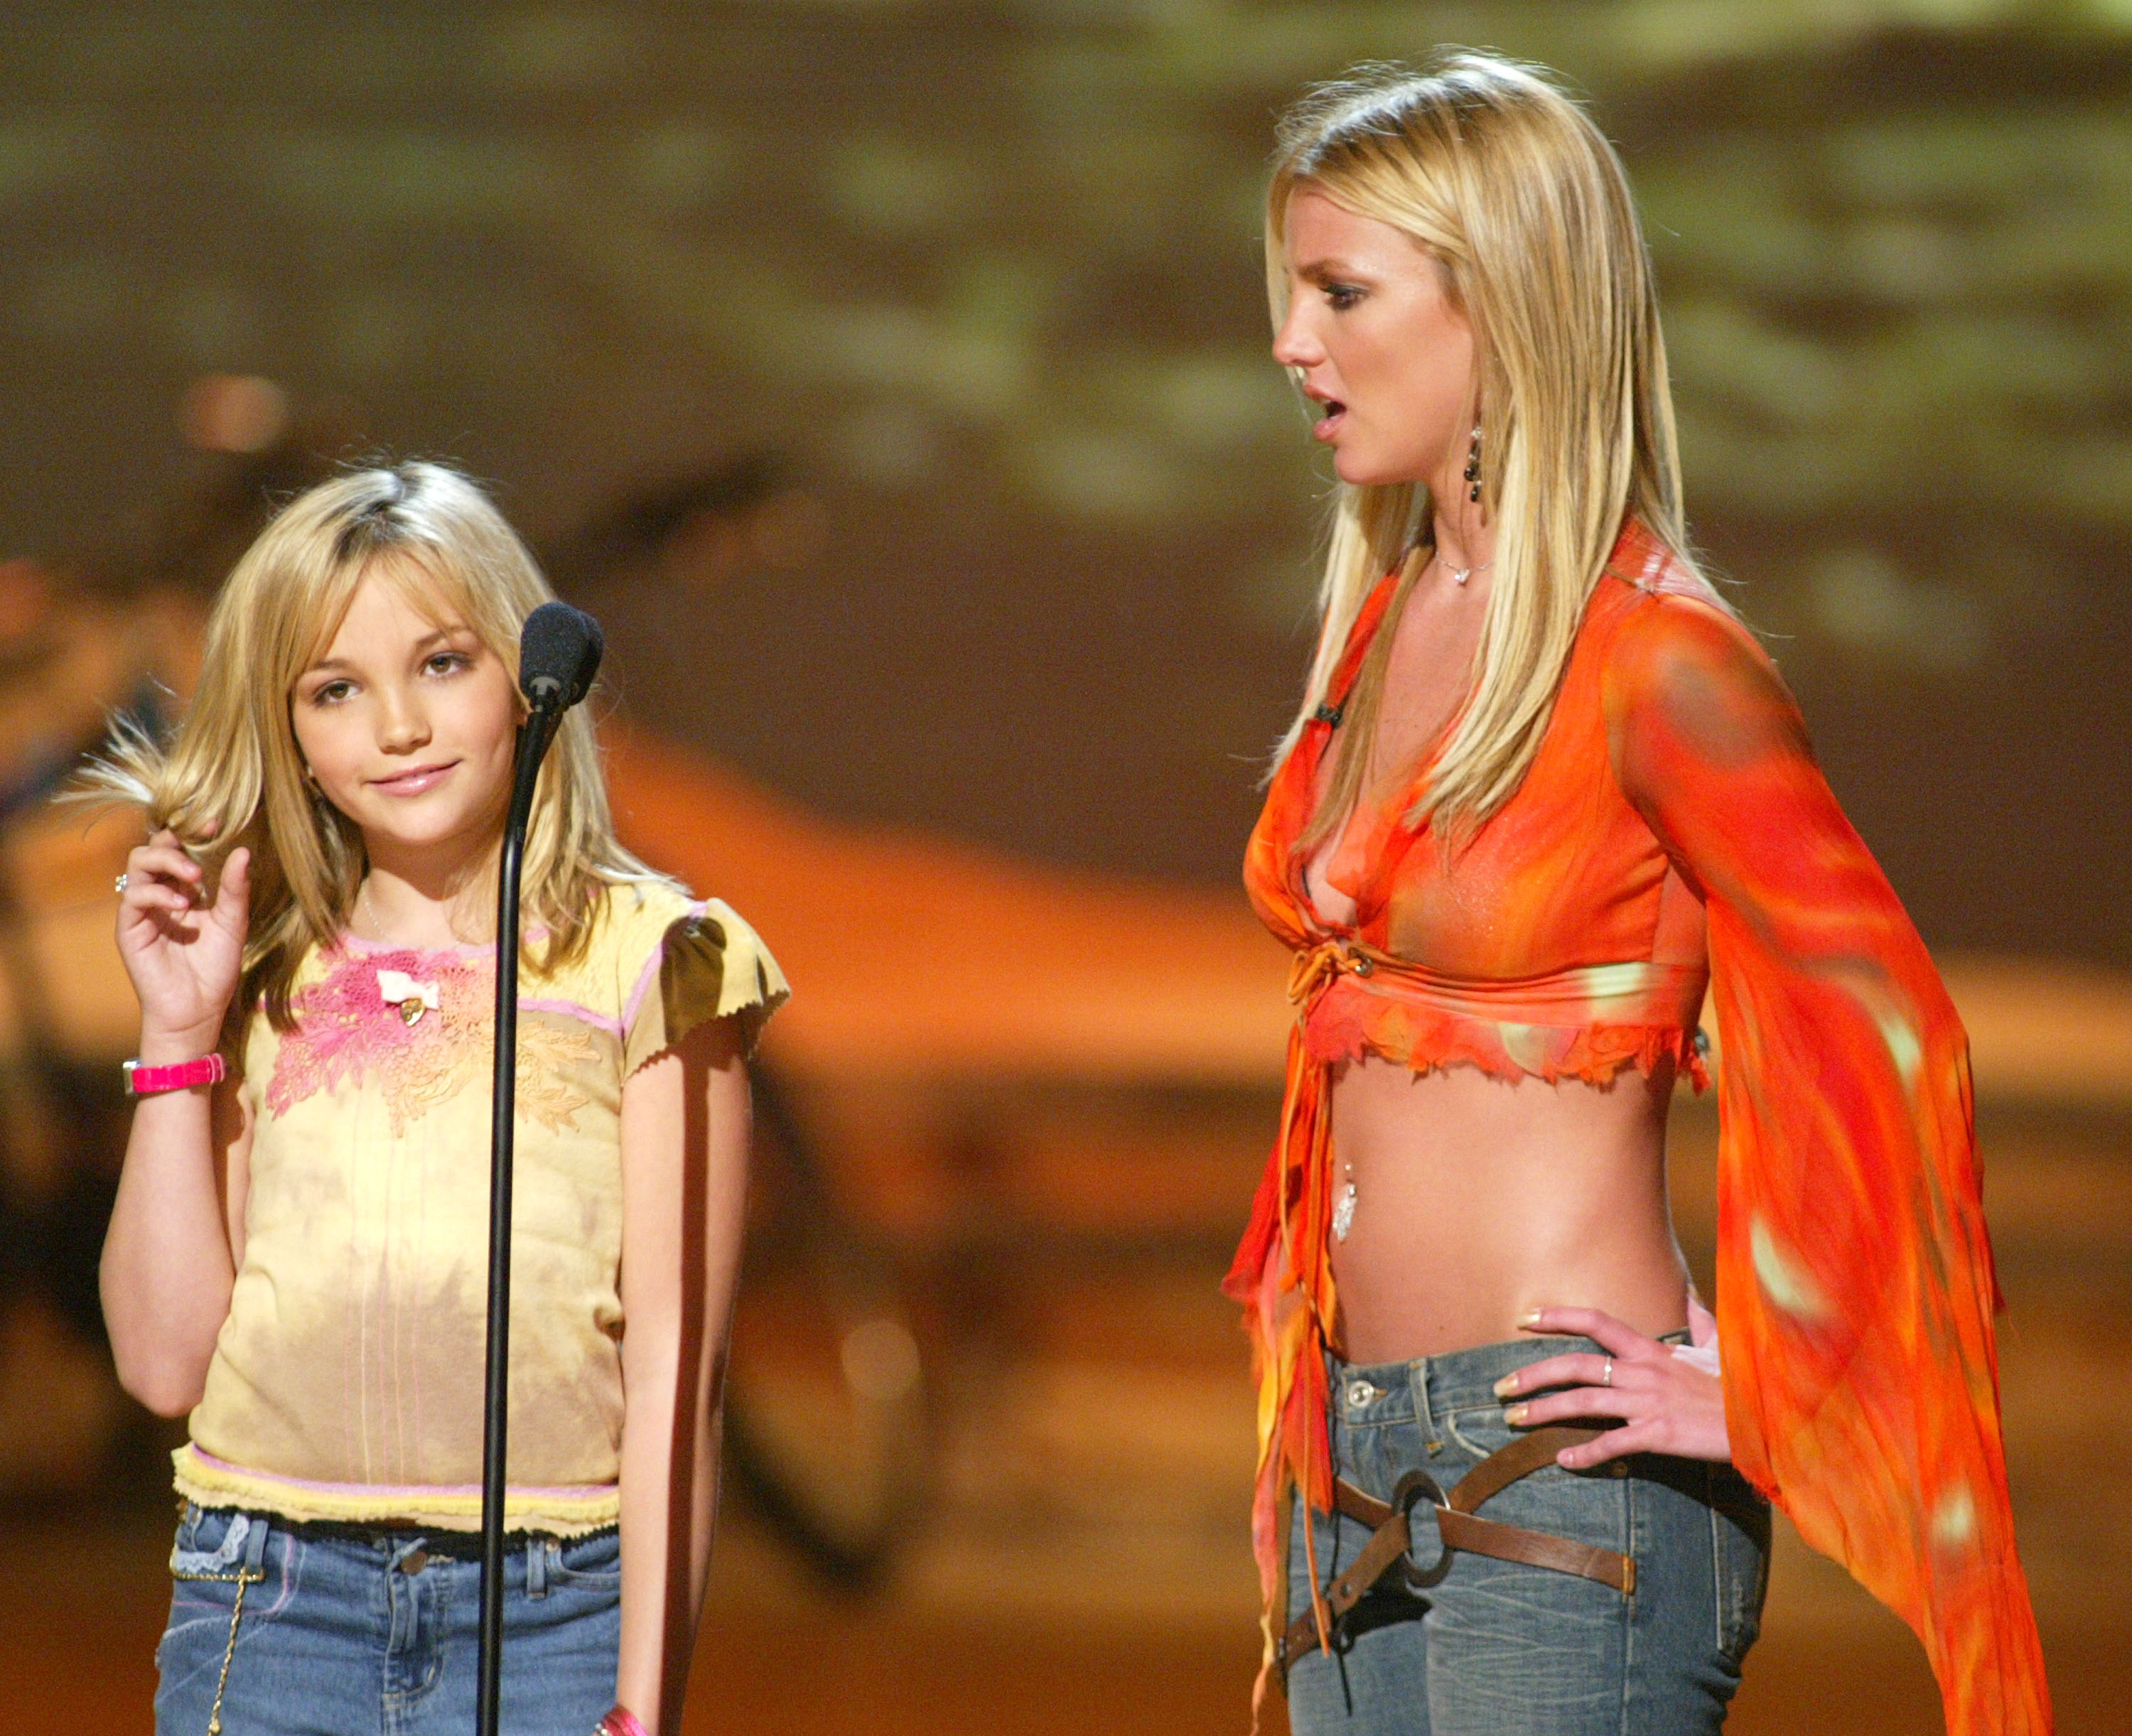 4f782f73a8916 15 Most Ridiculous Midriff Baring Outfits From The Early 2000s — PHOTOS